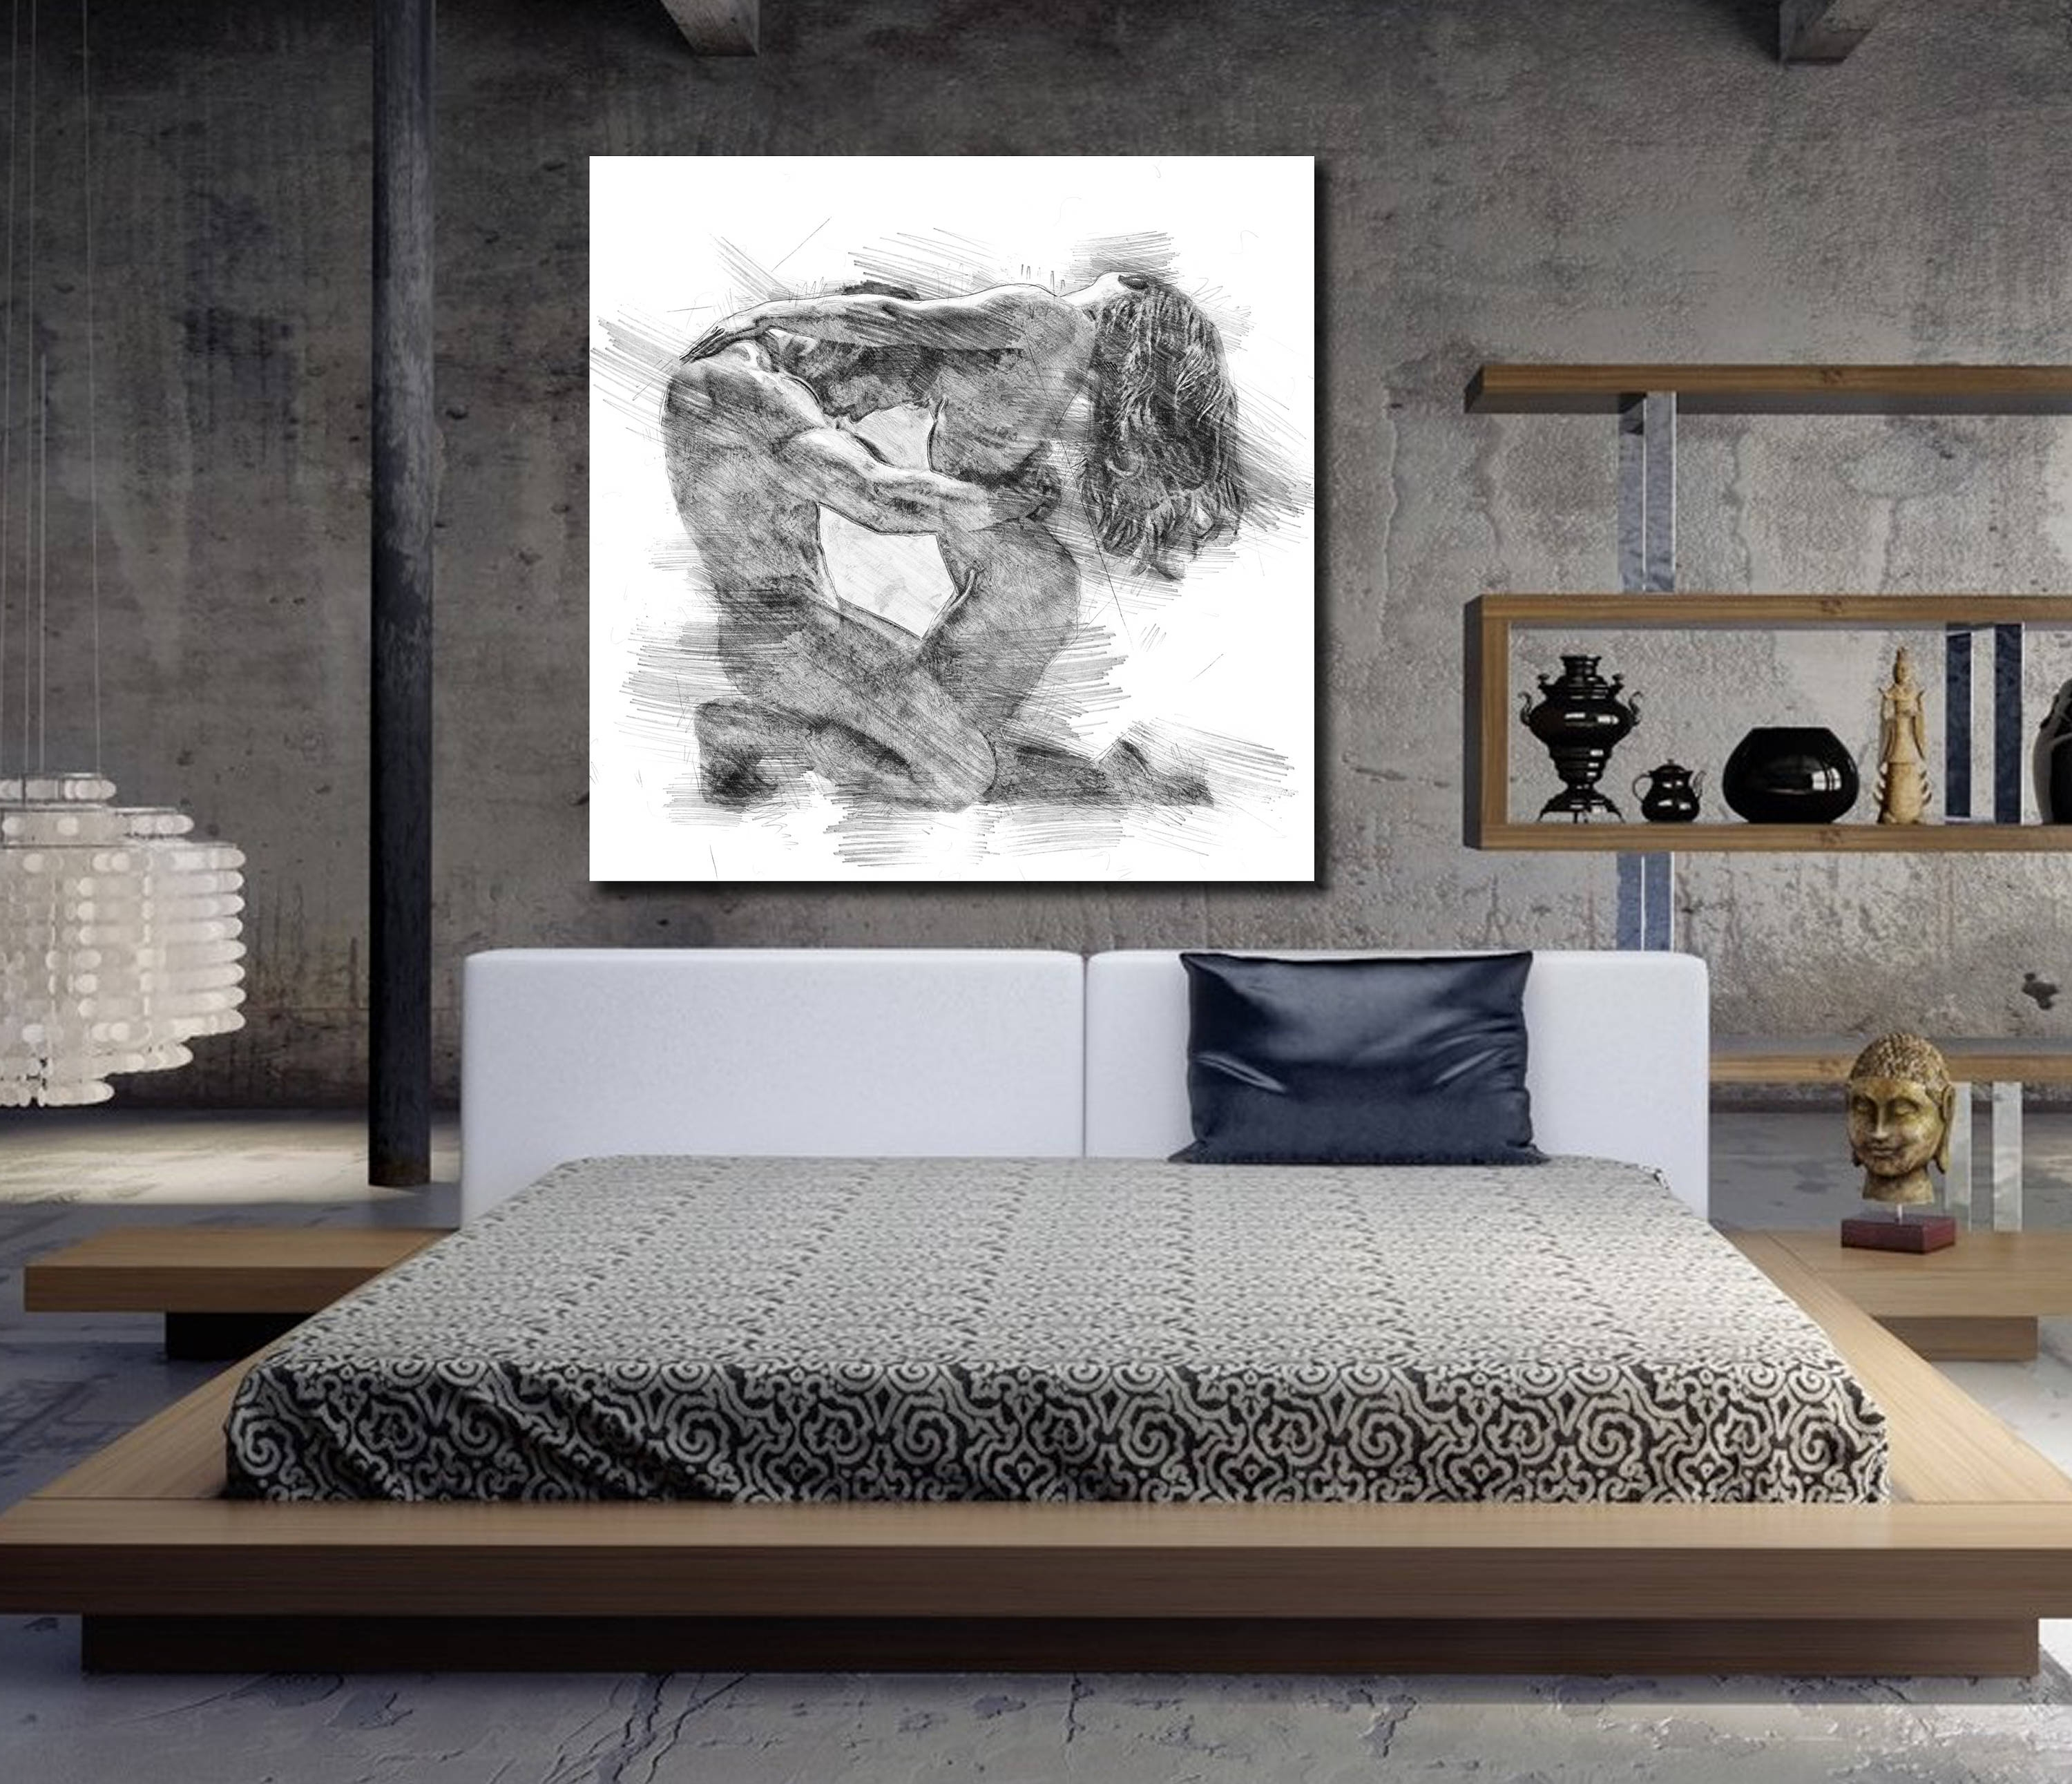 Bed Wall Art For Preferred Canvas Art His & Hers Bedroom Wall Art, Abstract Art Print, Pencil (View 2 of 15)